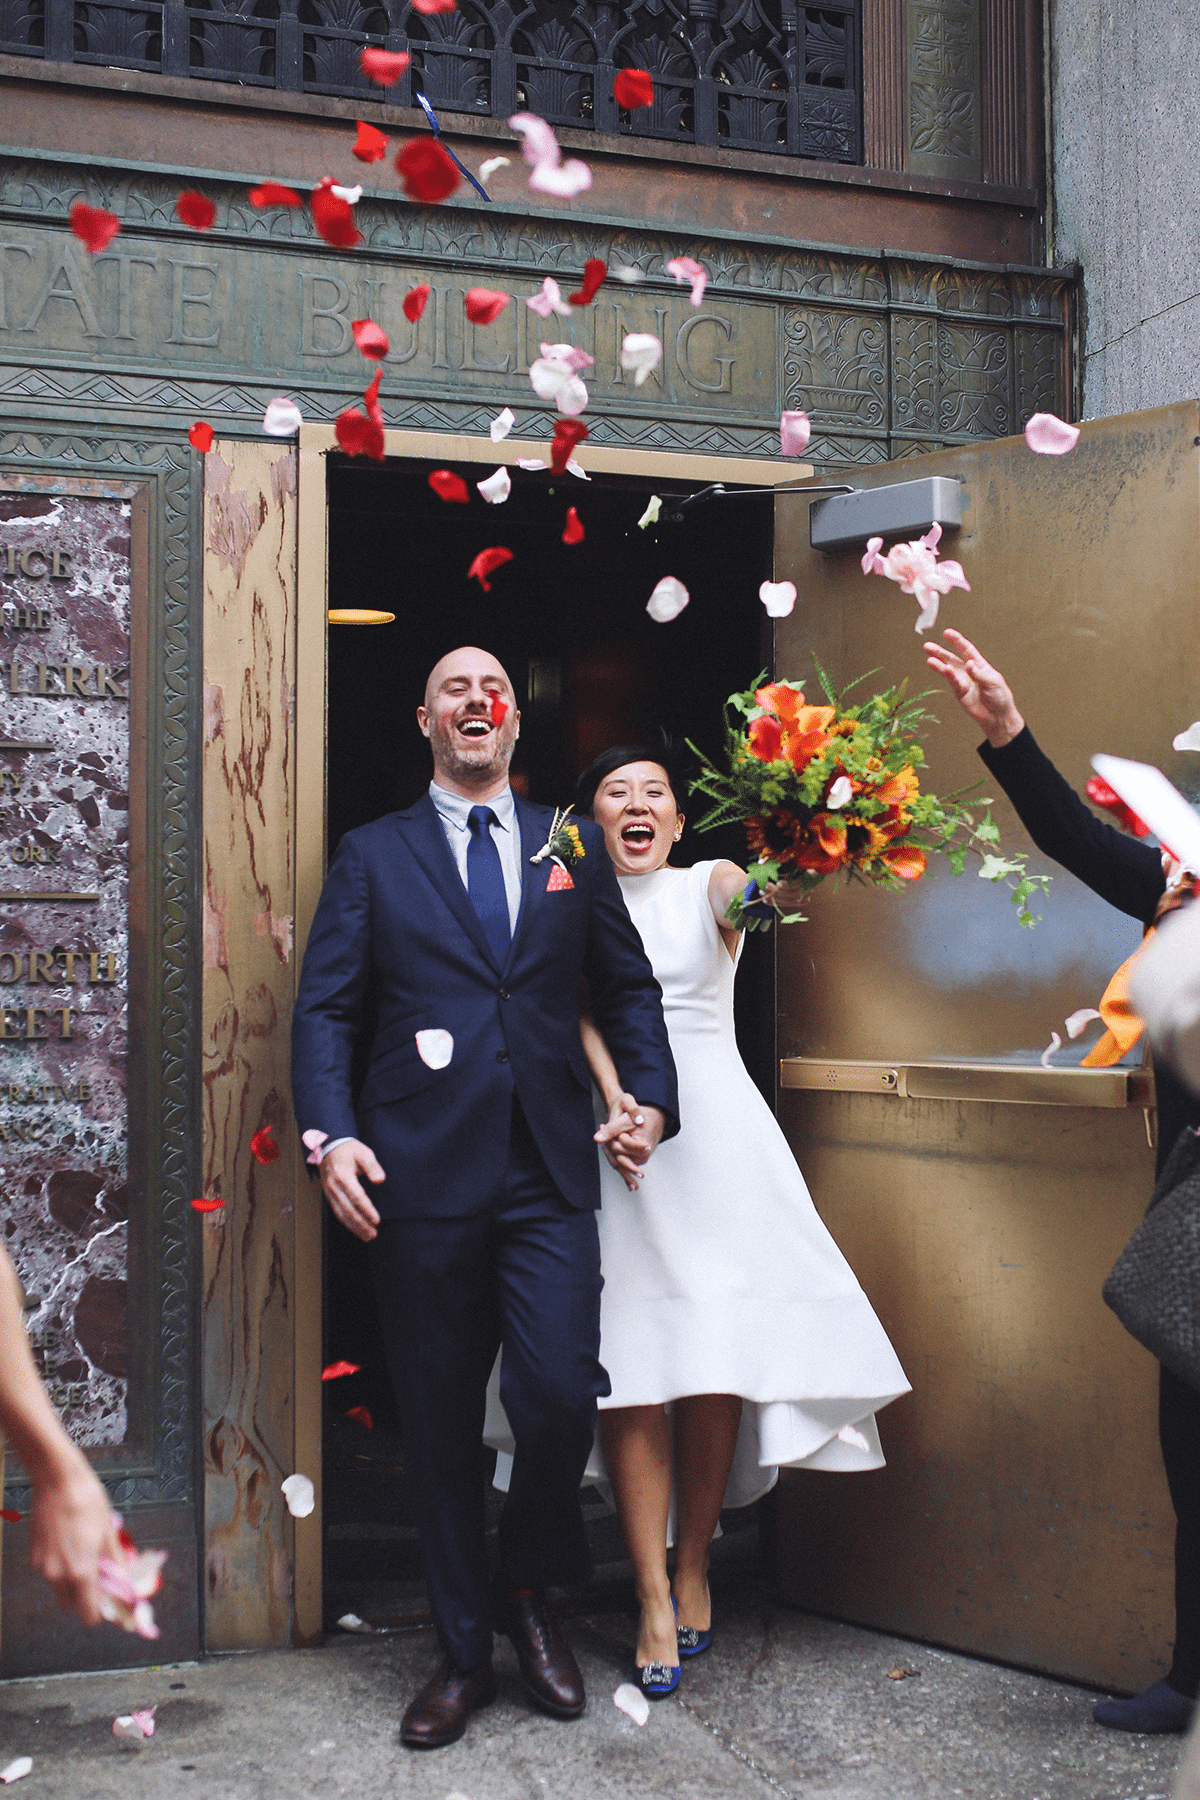 A couple exits their wedding ceremony with flower petals being thrown